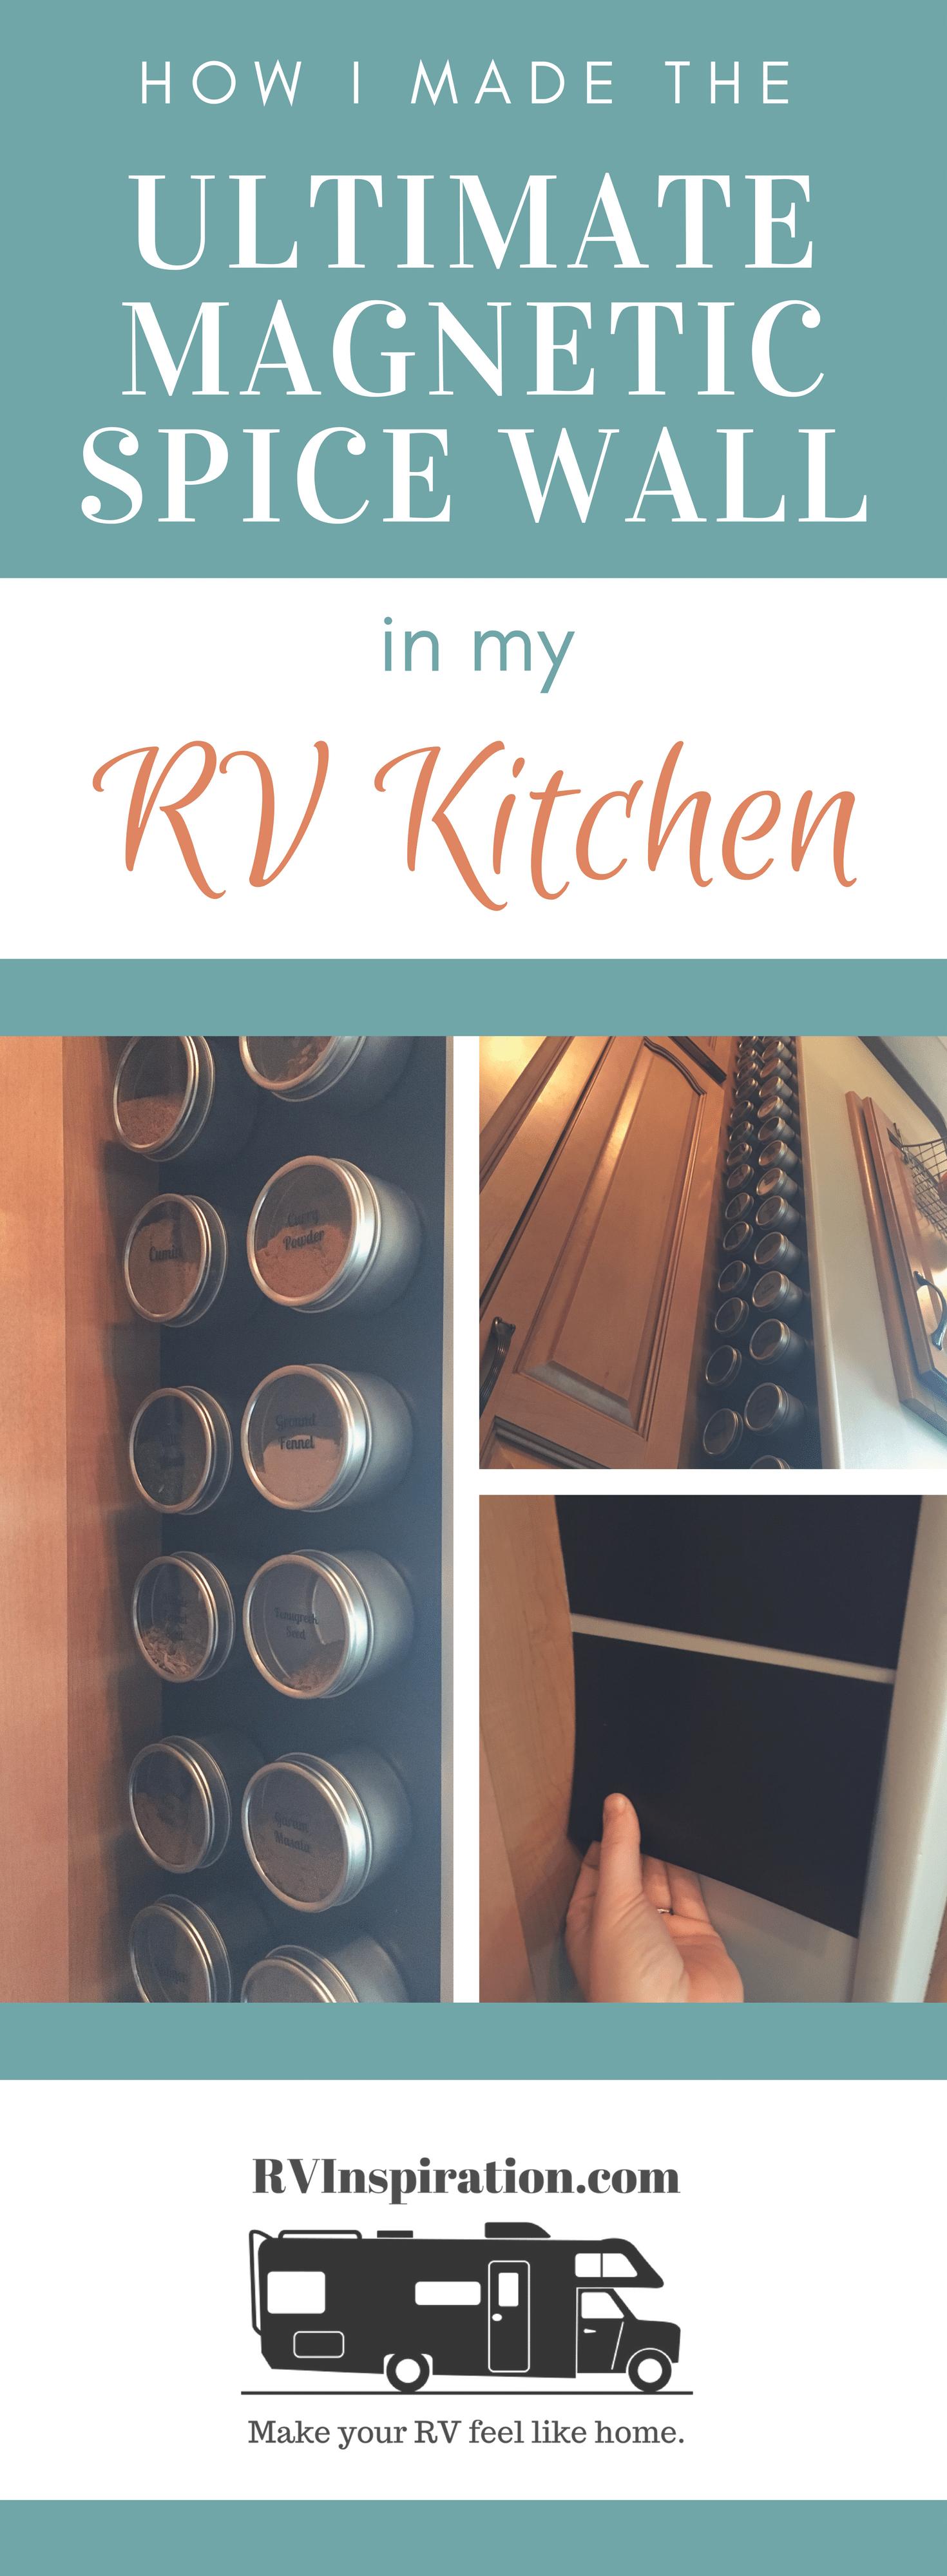 RV kitchen organization: basket hanging over cabinet door, spice tins sticking to magnetic wall